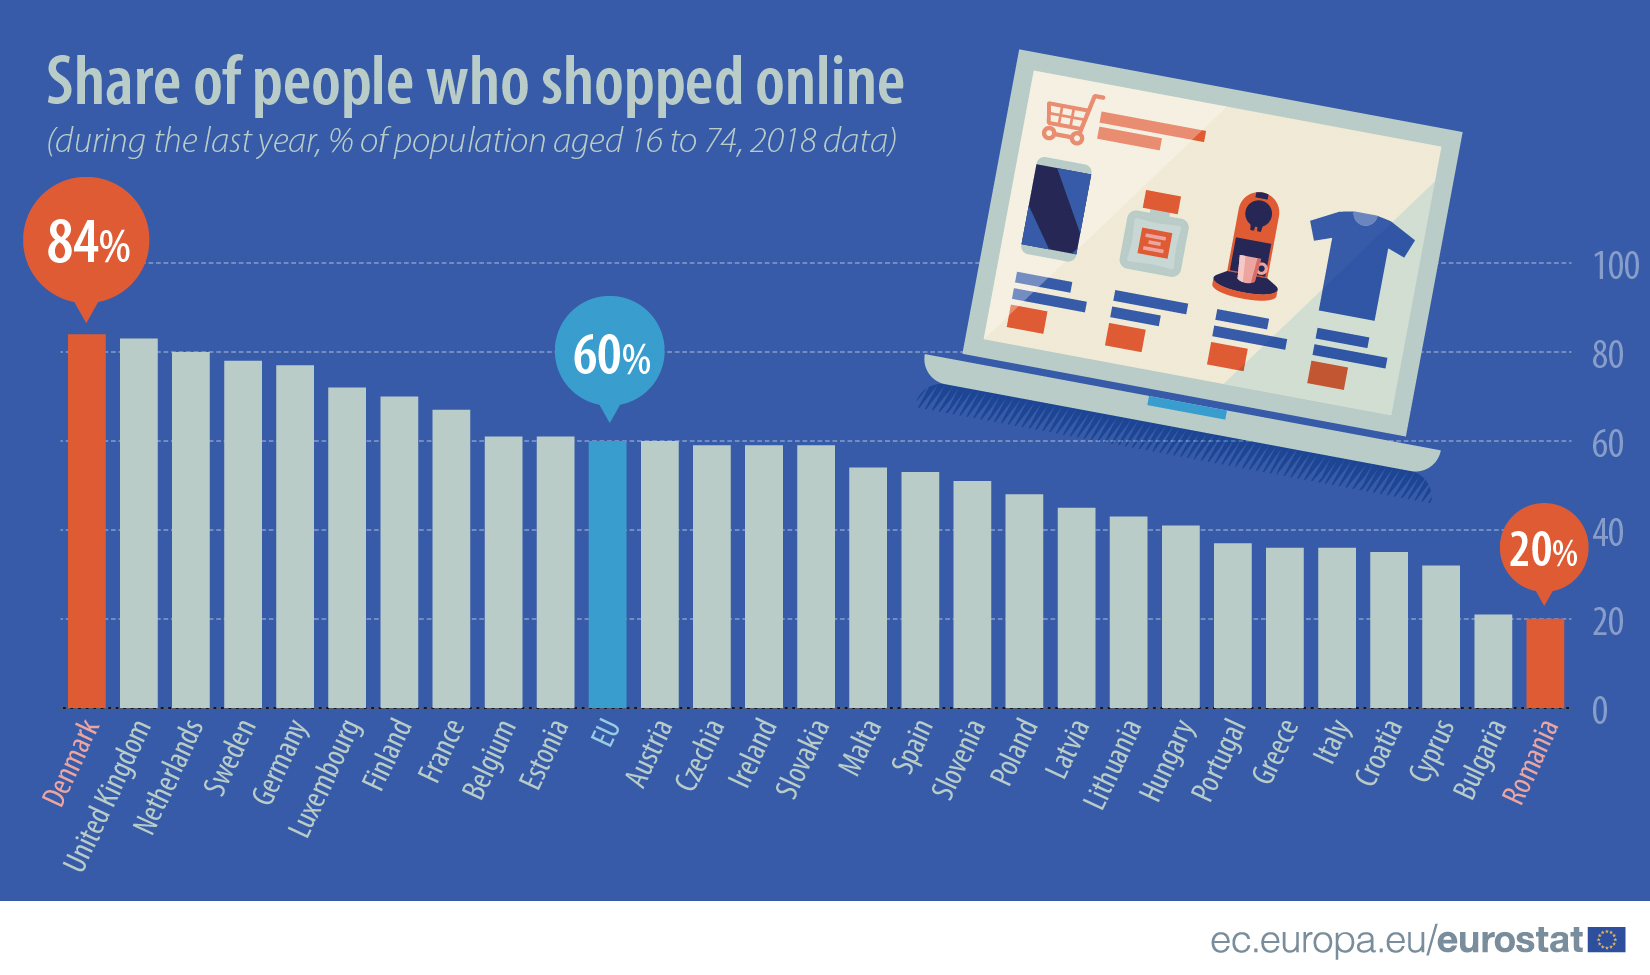 Share people who shopped online, 2018